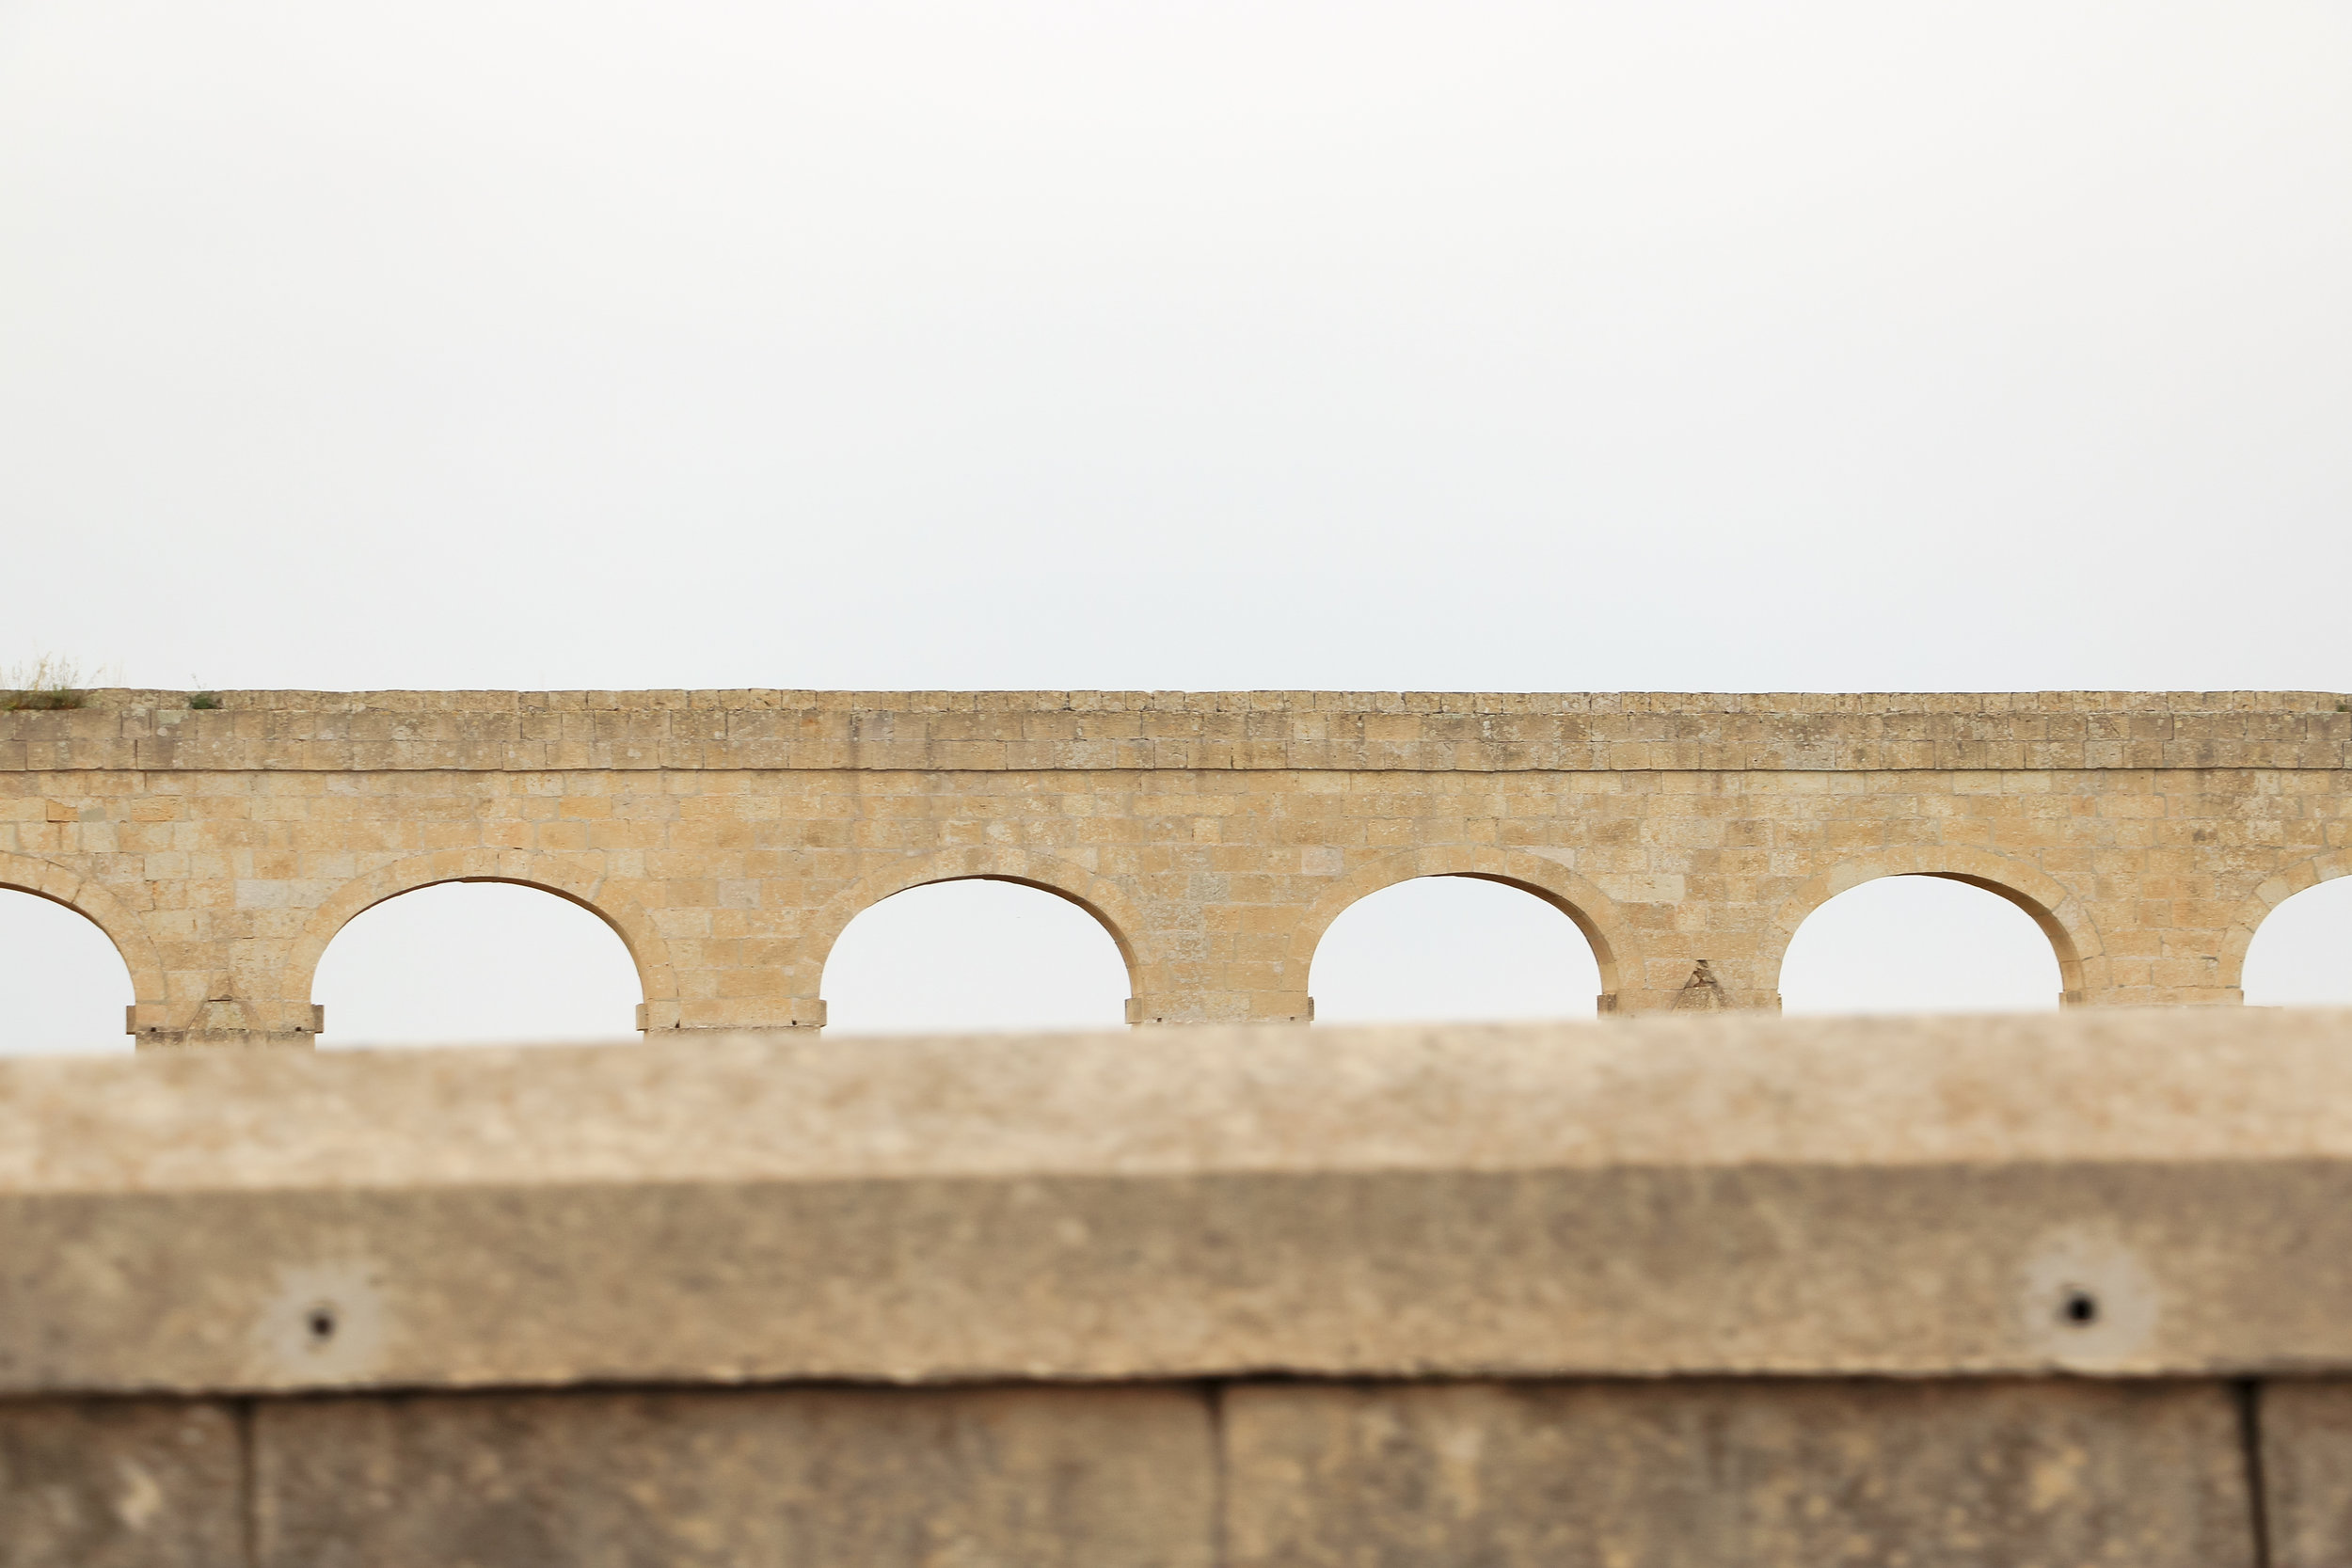 Aqueducts | MAltese Islands Architecture - Thinking About Appreciation For Quality In Malta | Gozo, Malta, Europe | DoLessGetMoreDone.com | - Canon Minimal Travel Documentary Photography - search for Liveability | Sustainability